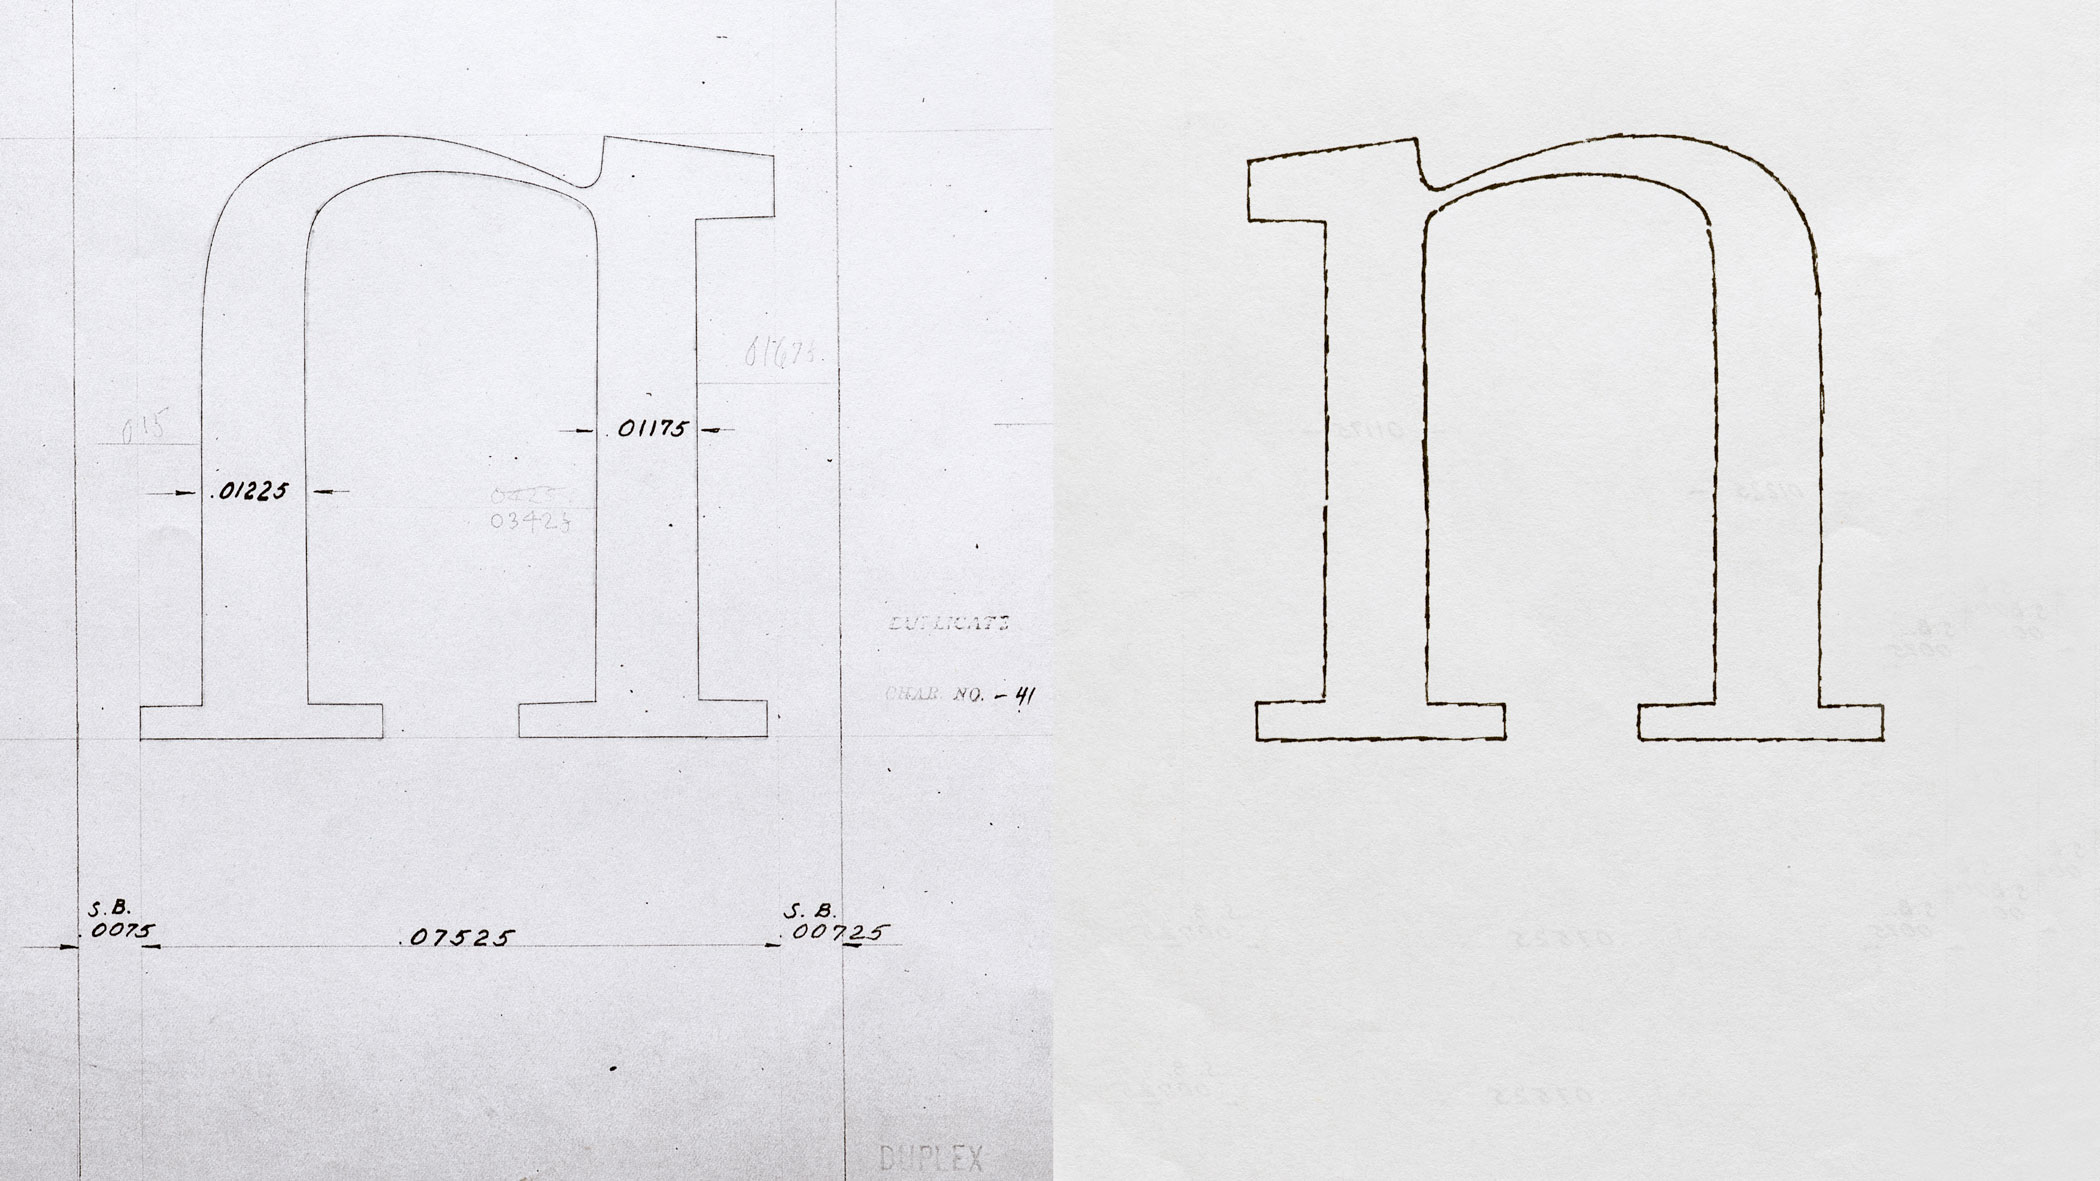 Recasting electra as aluminia letterform archive